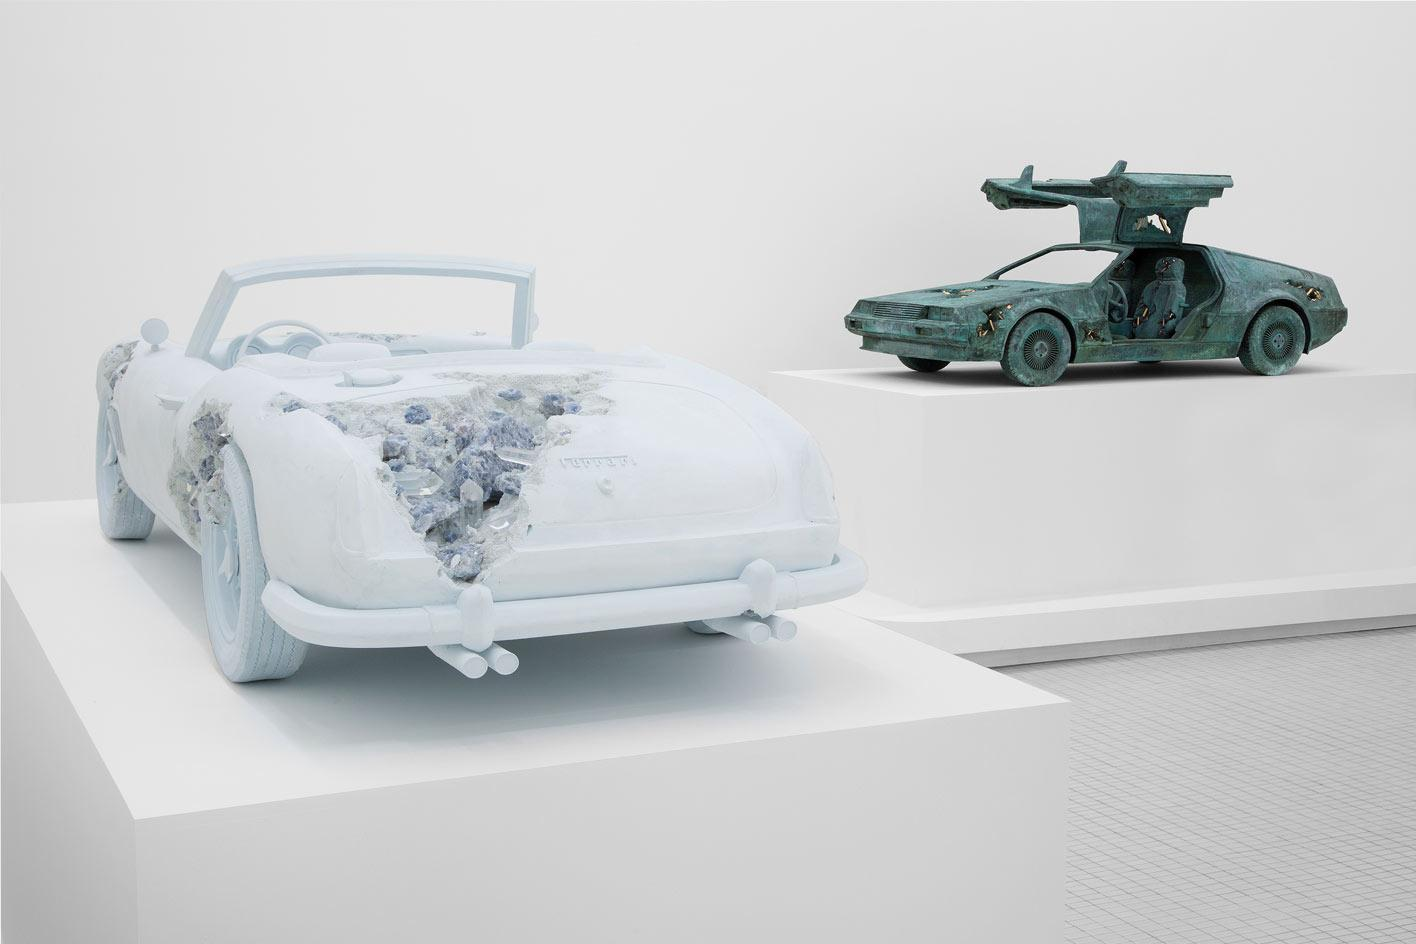 Installation view of Daniel Arsham, 'Turning Wrenches', featuringcar sculptures of a Ferrari (left) andDMC Delorean (right)